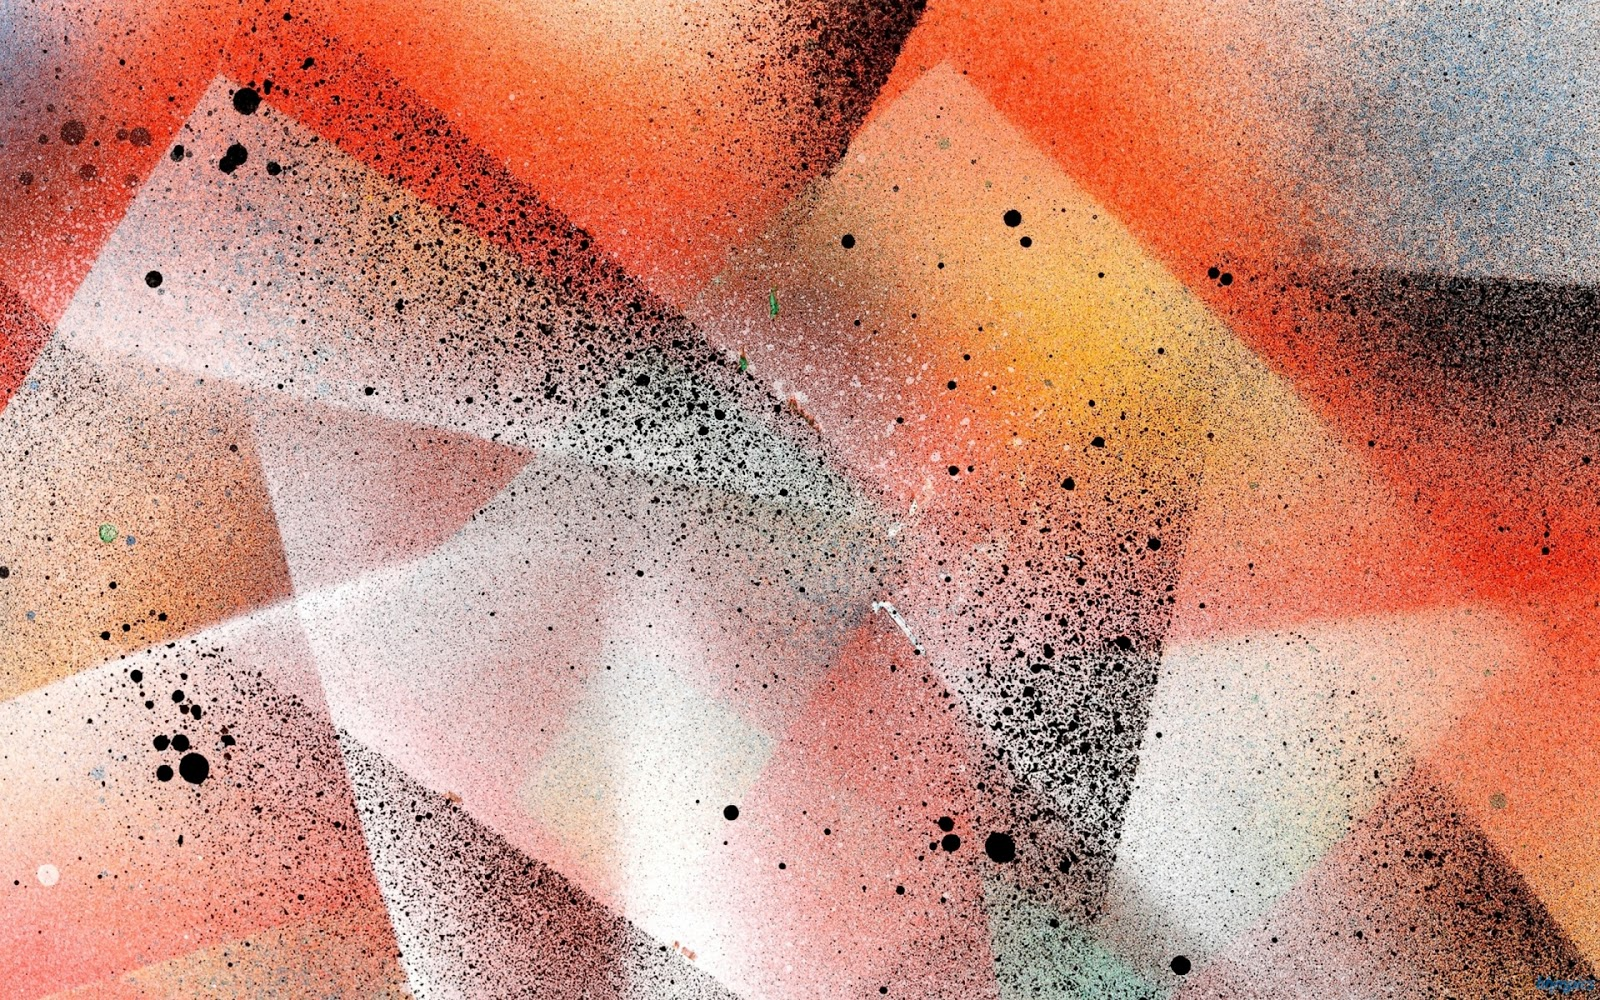 http://4.bp.blogspot.com/-nAX-iEQQUpo/UIZBUBrIGfI/AAAAAAAAGl8/N3TeepzOTgA/s1600/spray_abstract-1920x1200.jpg